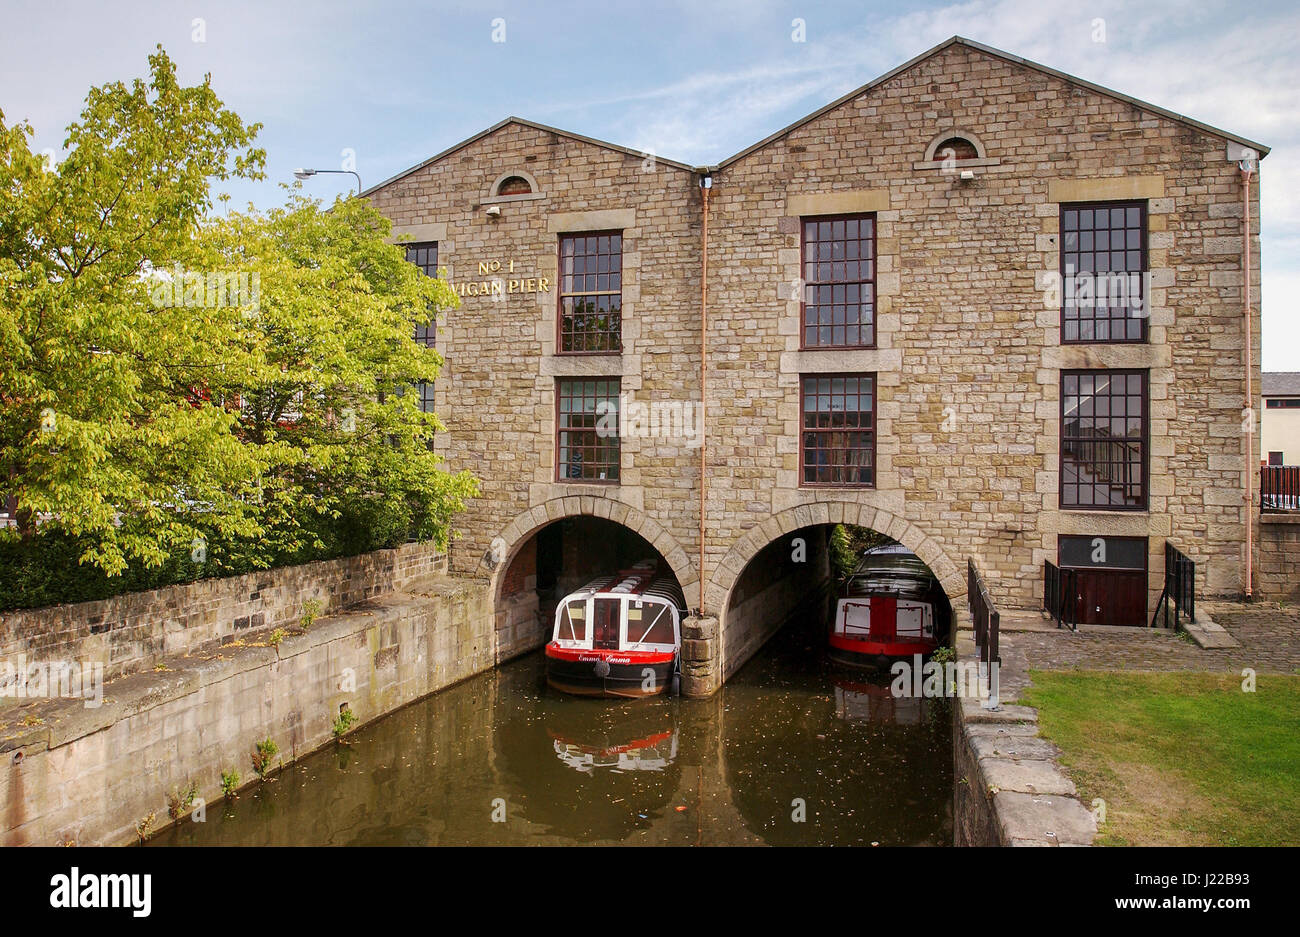 Wigan Pier. The pub based there is called the George Orwell. Stock Photo